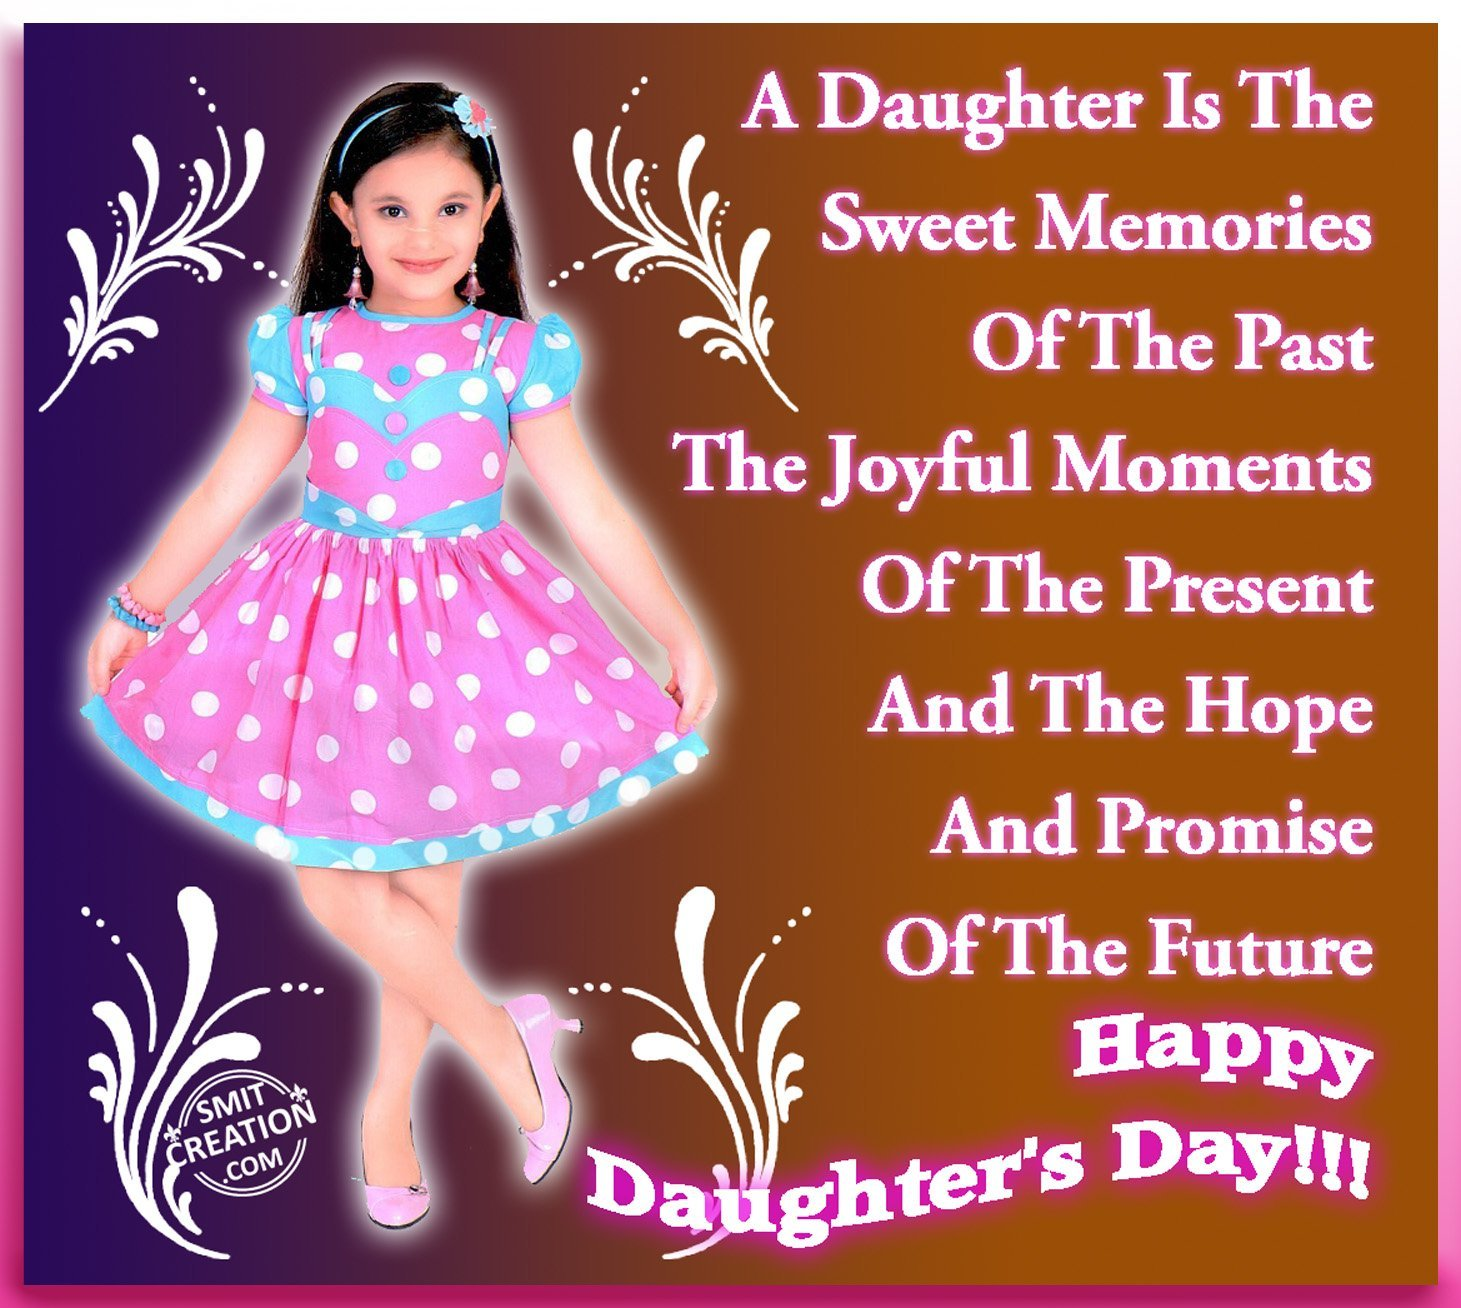 Daughters day pictures and graphics smitcreation page 4 download image kristyandbryce Images